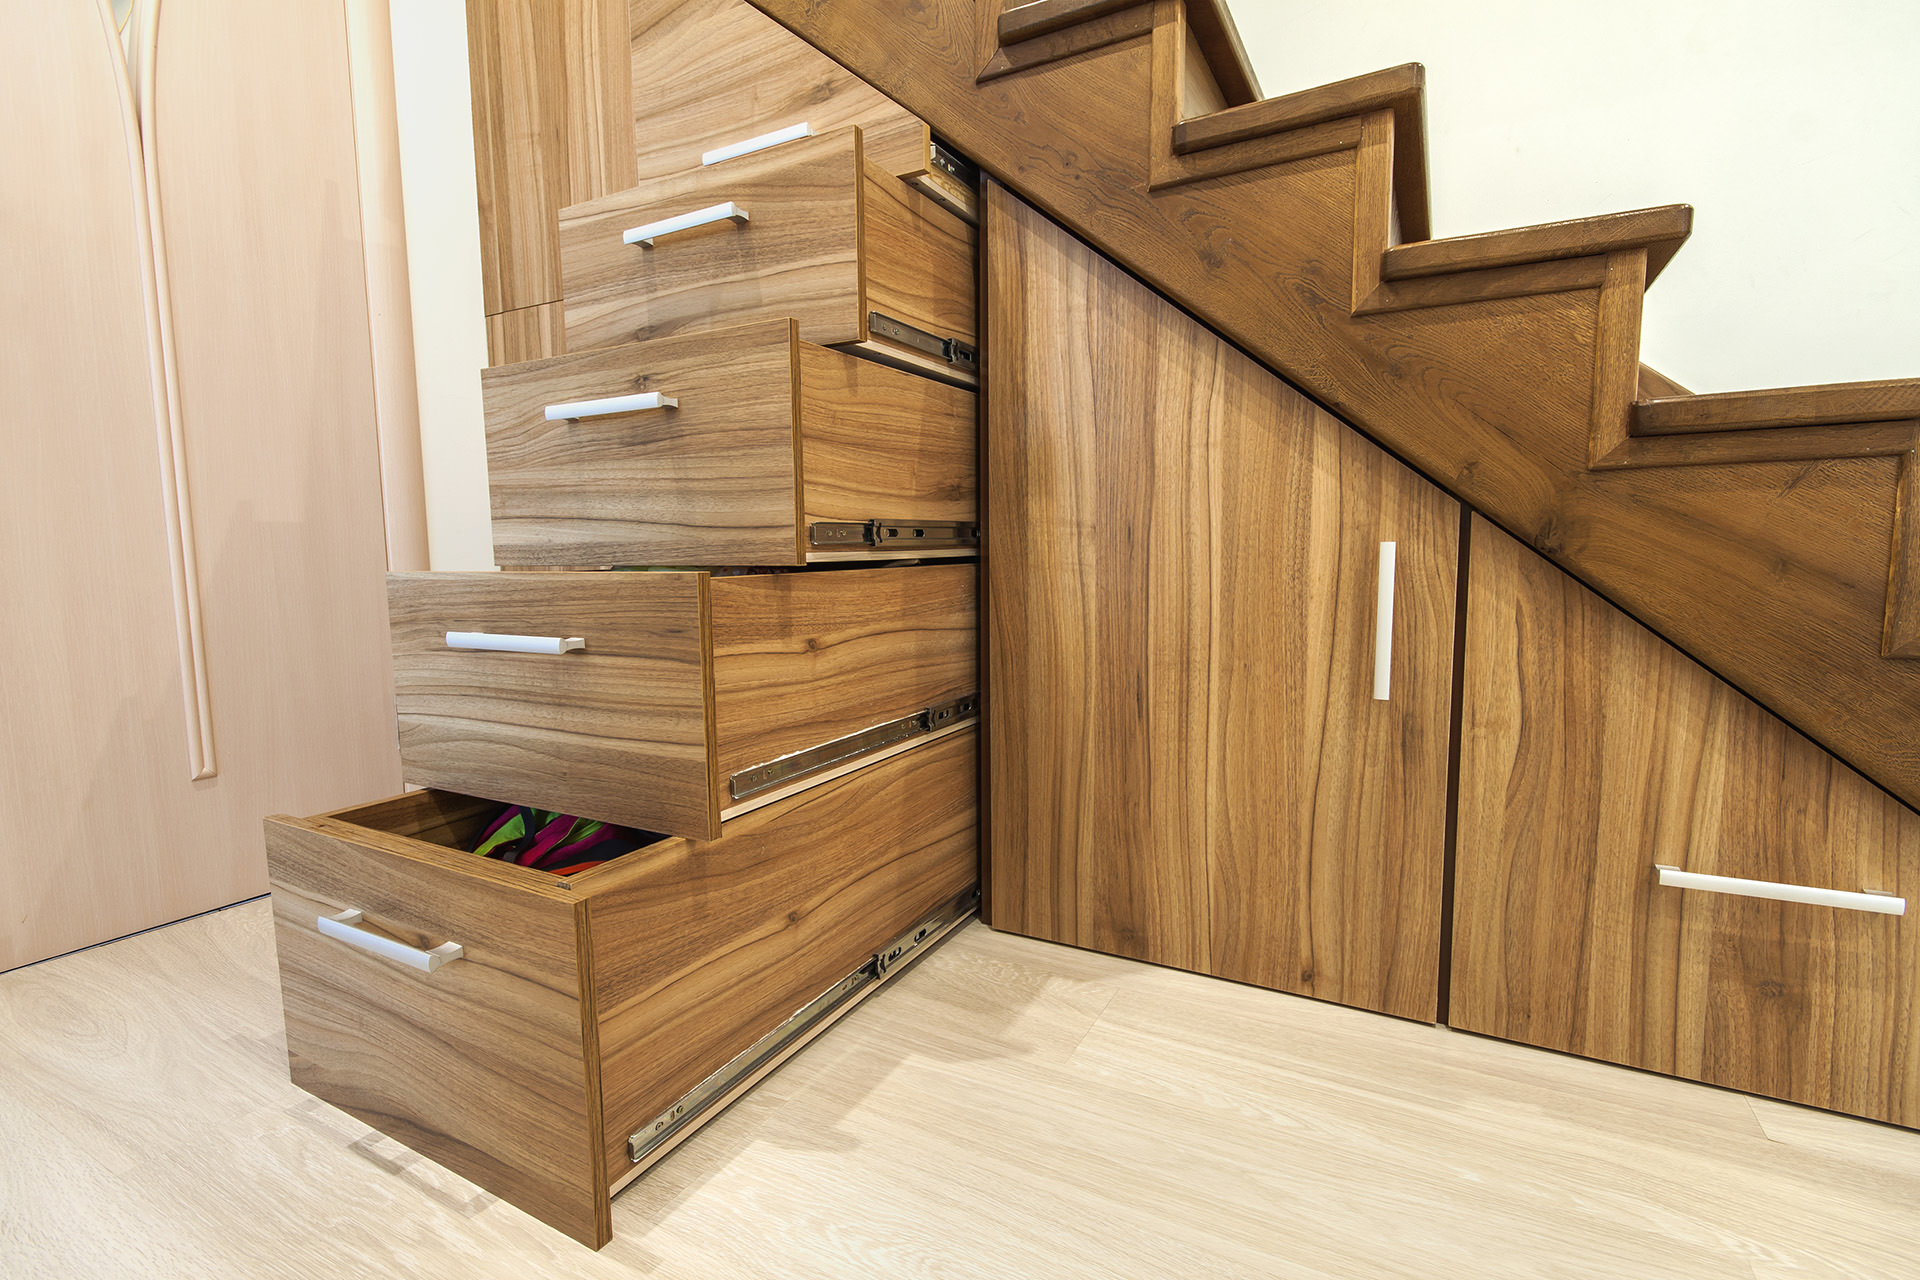 Modern architecture interior with  luxury hallway with glossy wooden stairs in modern storey house. Custom built pullout cabinets on glides in slots under stairs